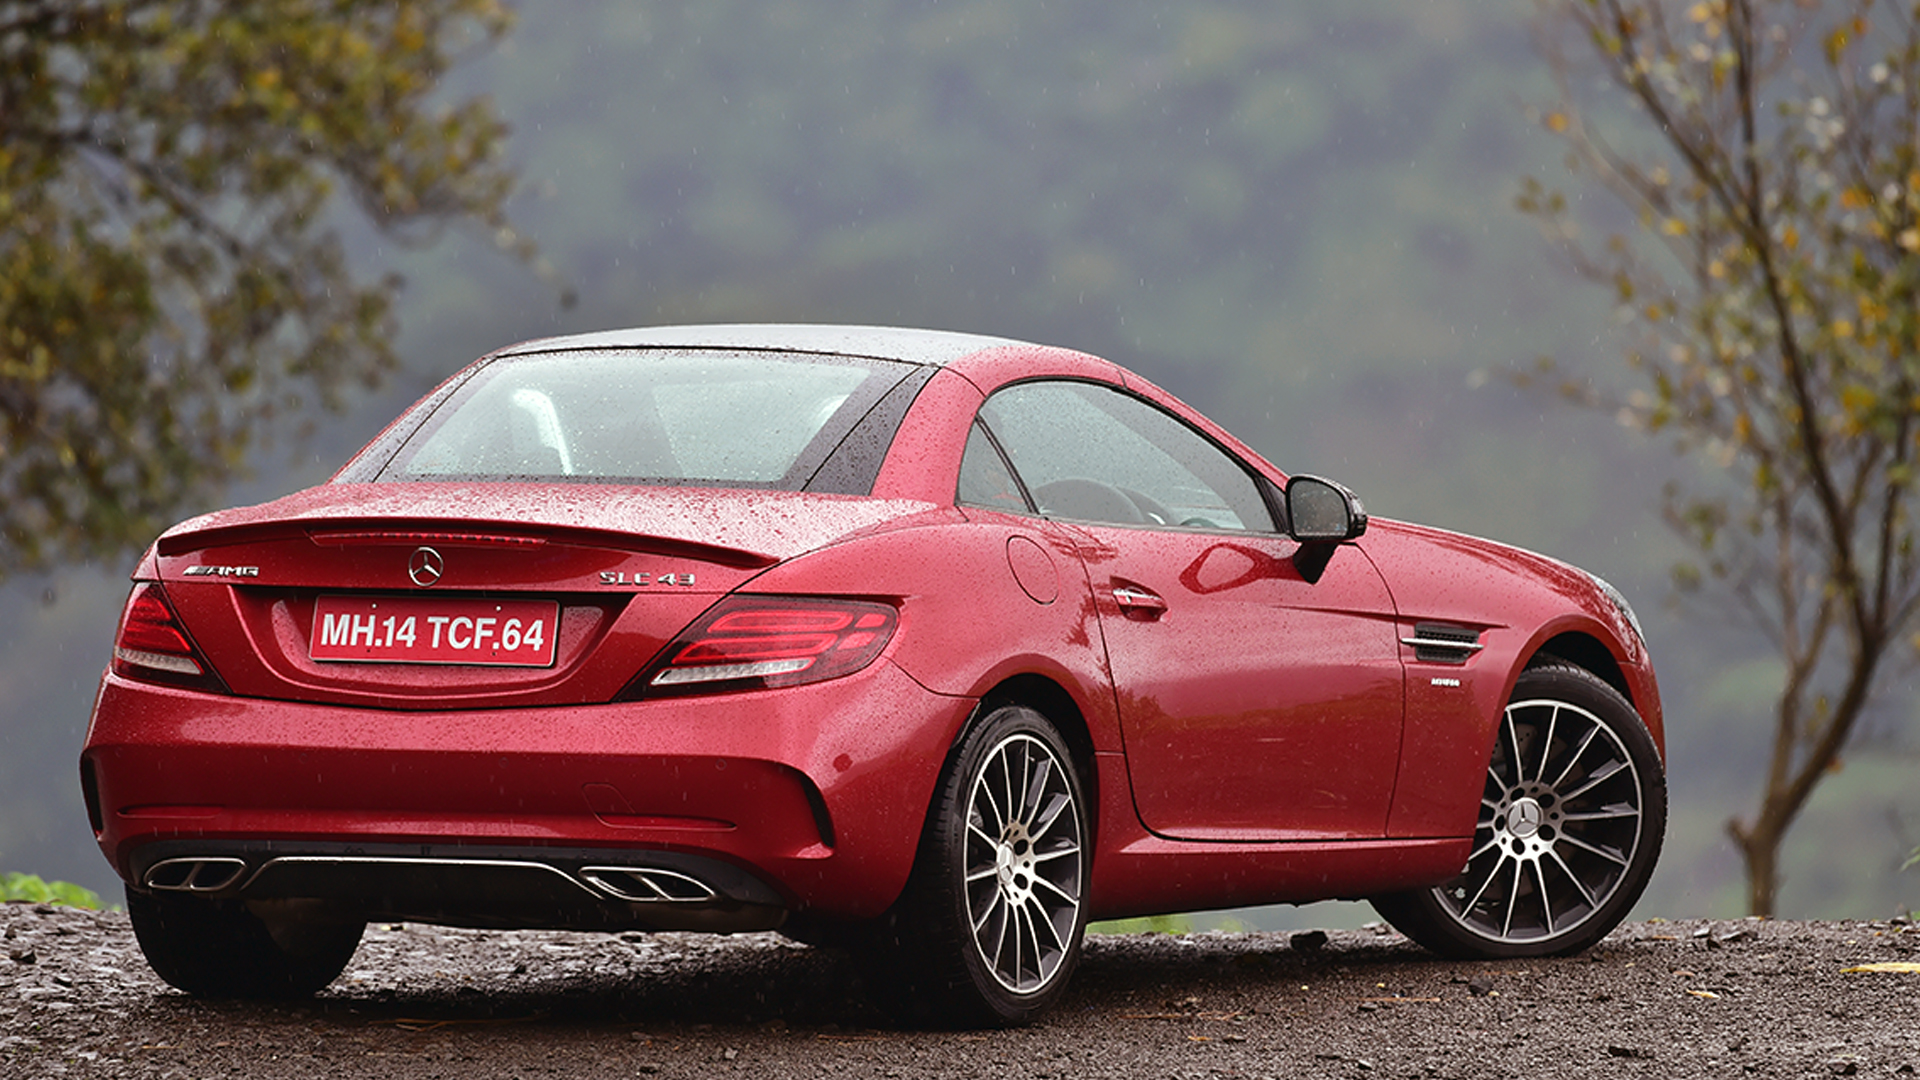 Mercedes Benz SLC 2016 43 AMG Compare